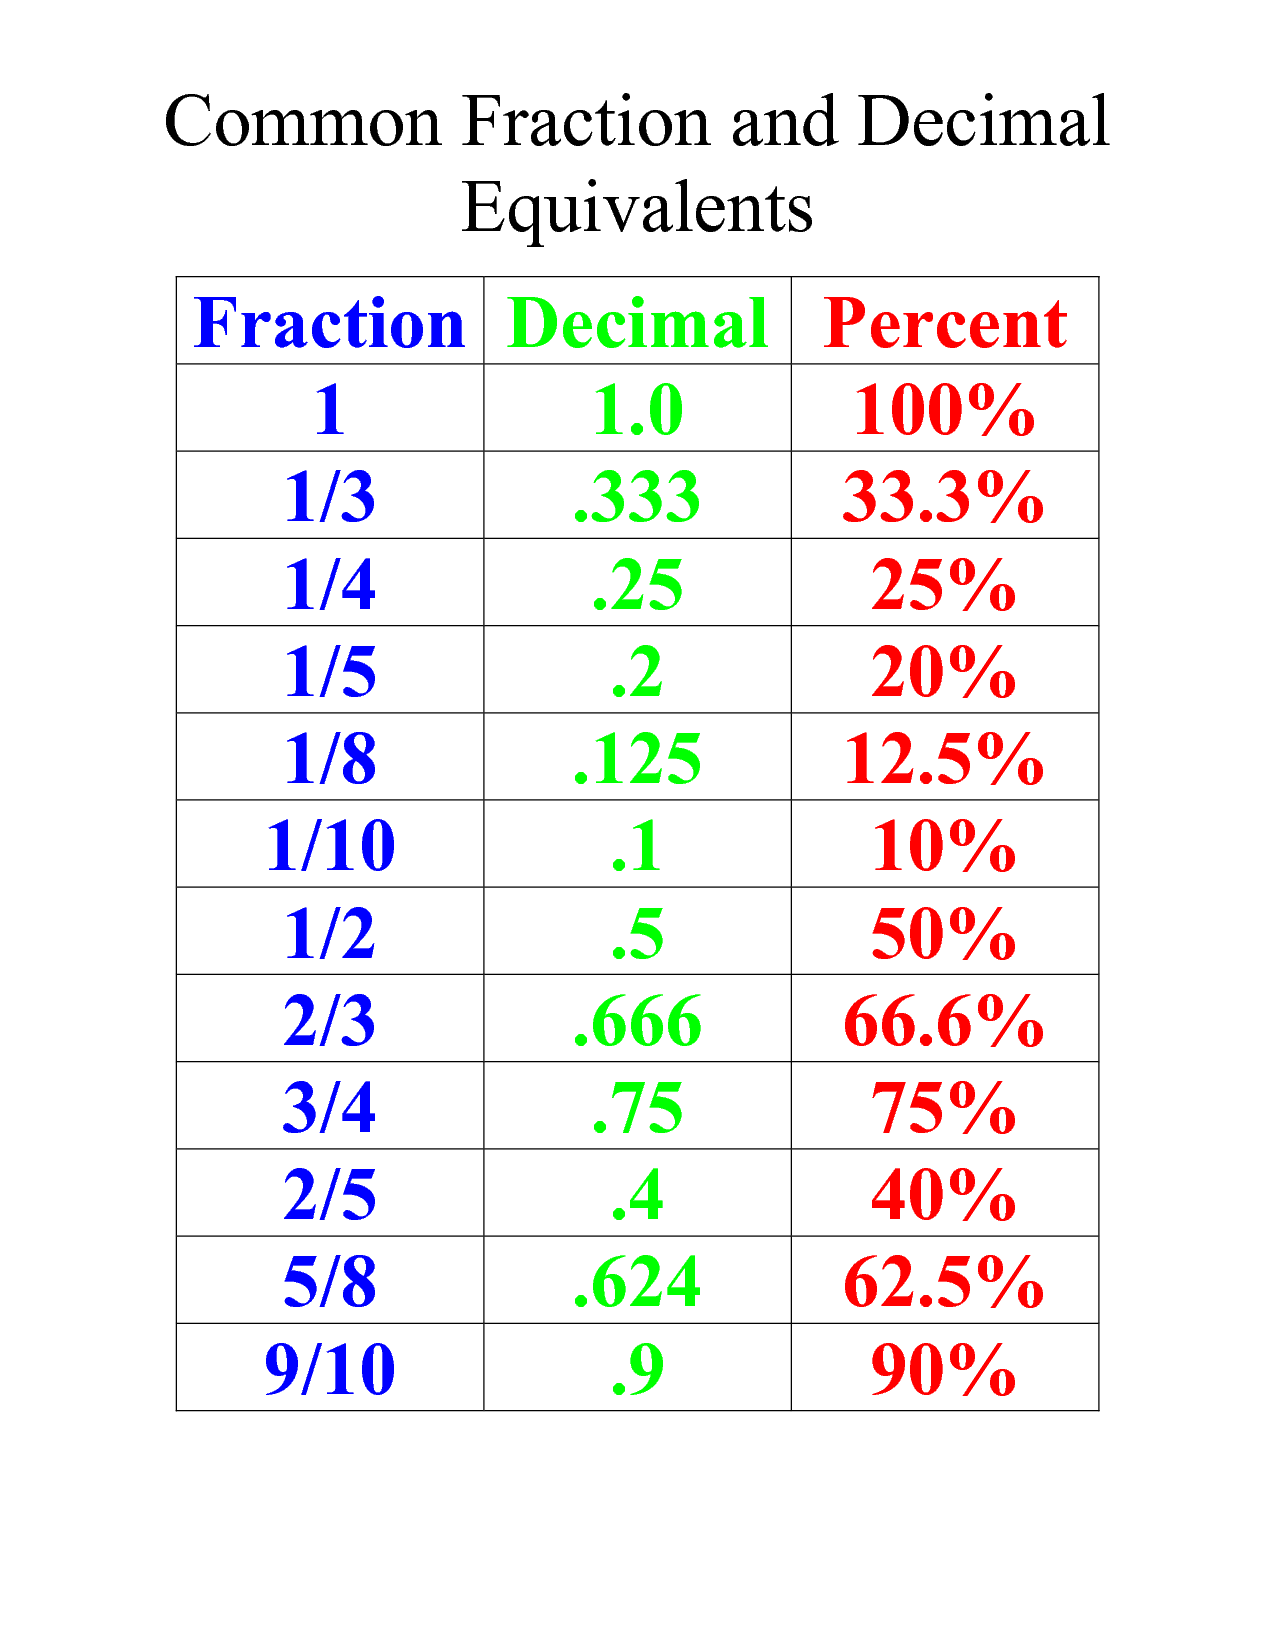 For 4th 5th Grade Common Fraction And Decimal